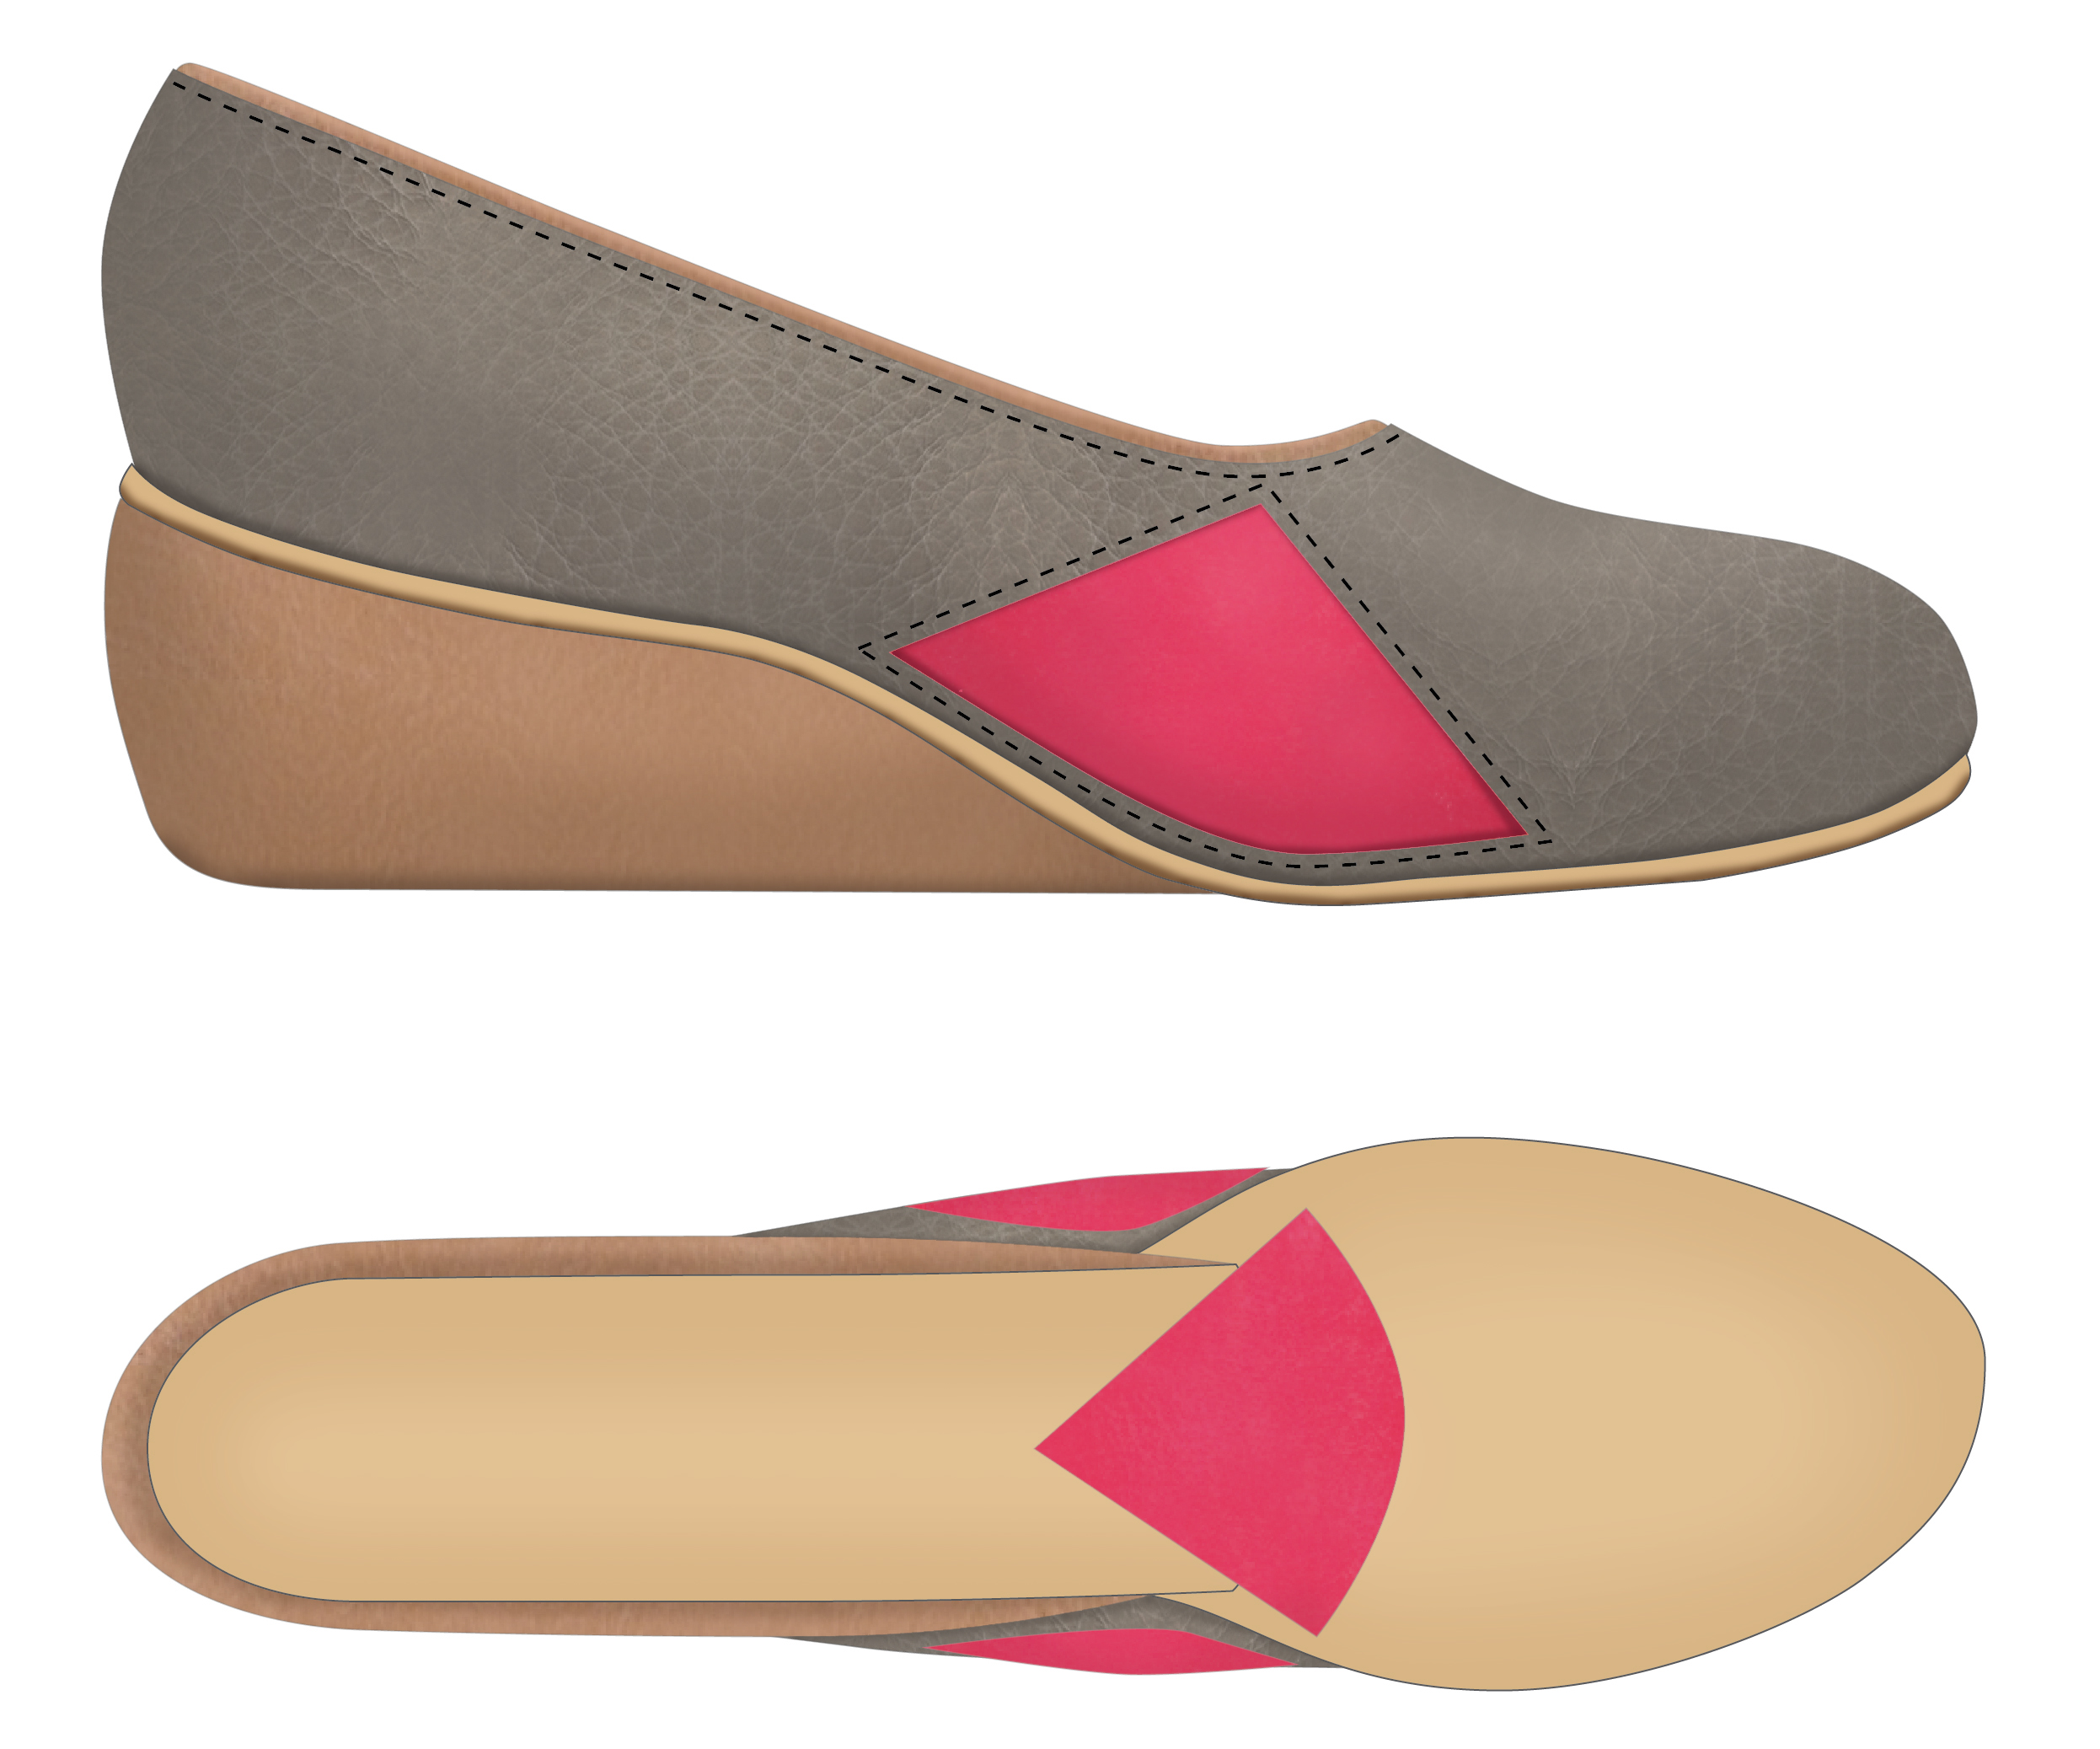 lateral/outsole rendering